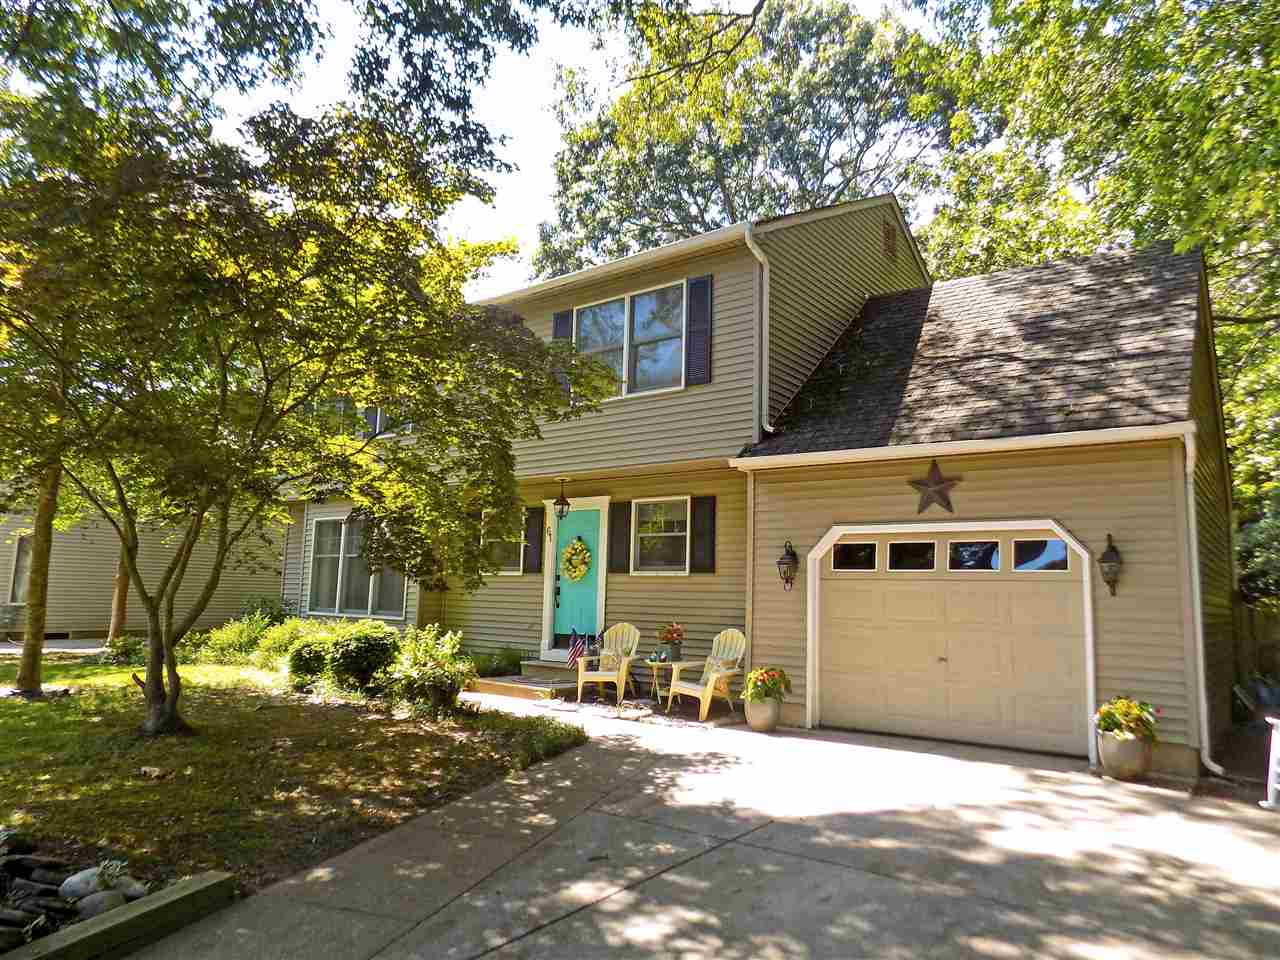 61 Capewoods Road - North Cape May